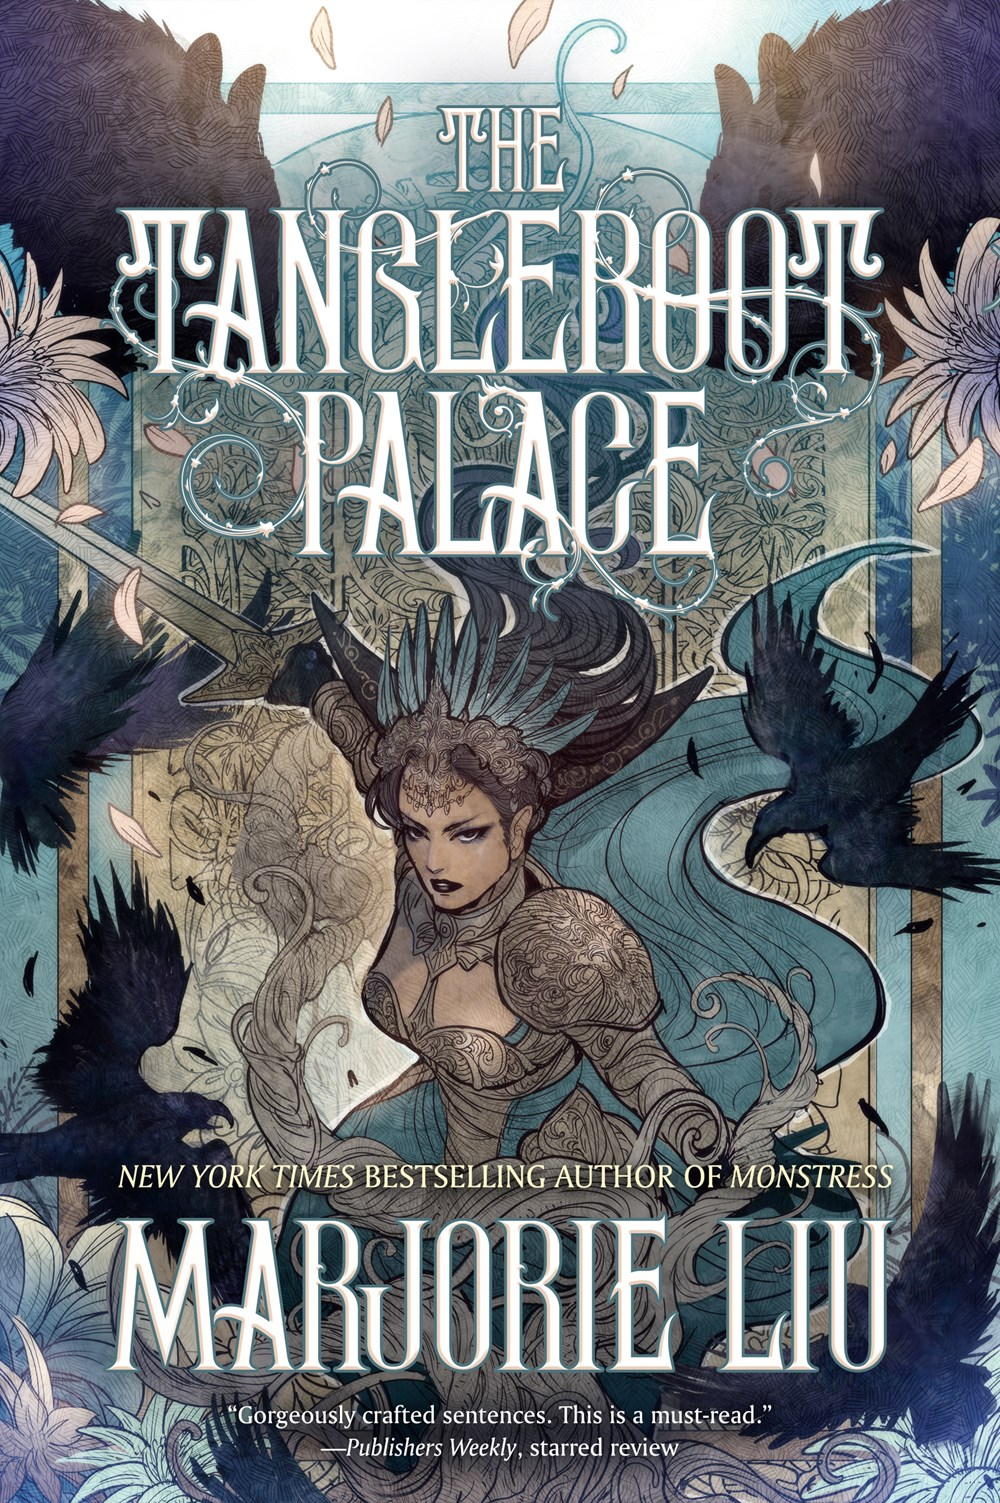 The Tangleroot Palace: Stories by Marjorie Liu